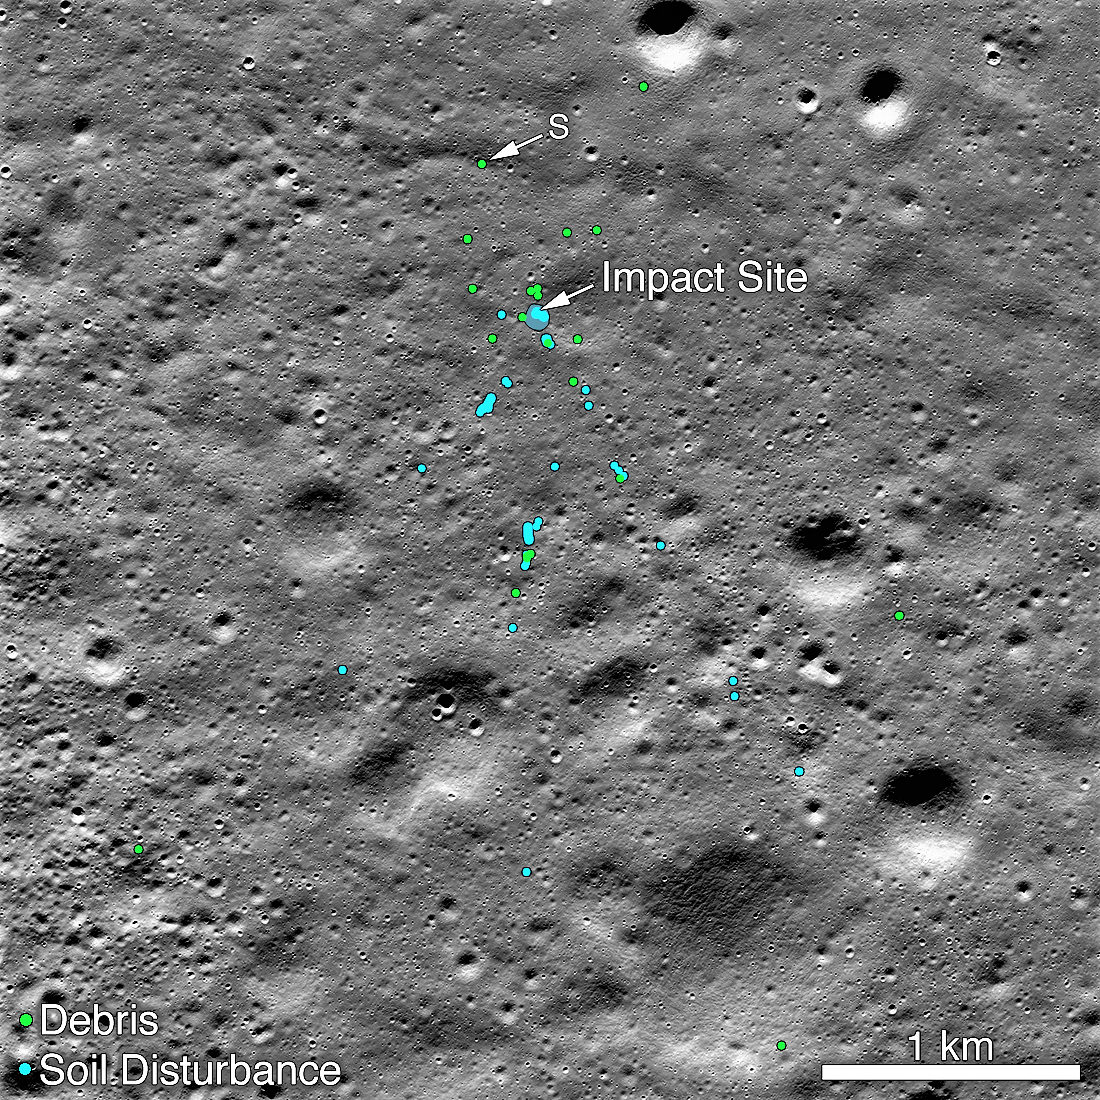 The remains of Vikram lunar spaceship The green dots indicate the debris. The blue dots indicate disturbance of the moon floor. Image: NASA/Goddard/Arizona State University.